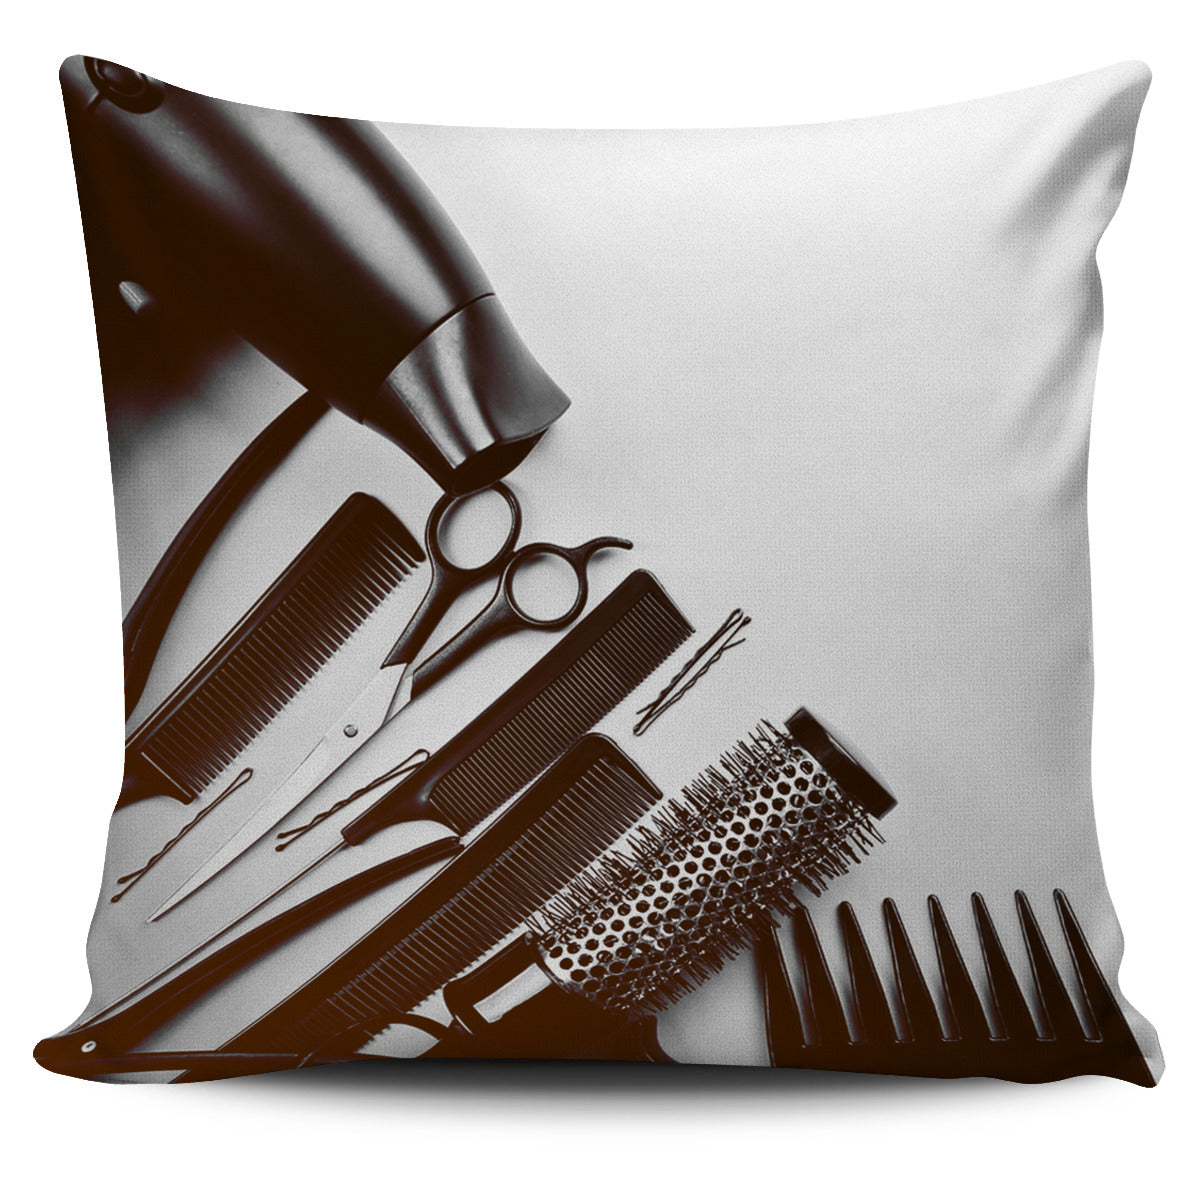 Hair Equipment Pillow Cover - Hairstylist Bestseller